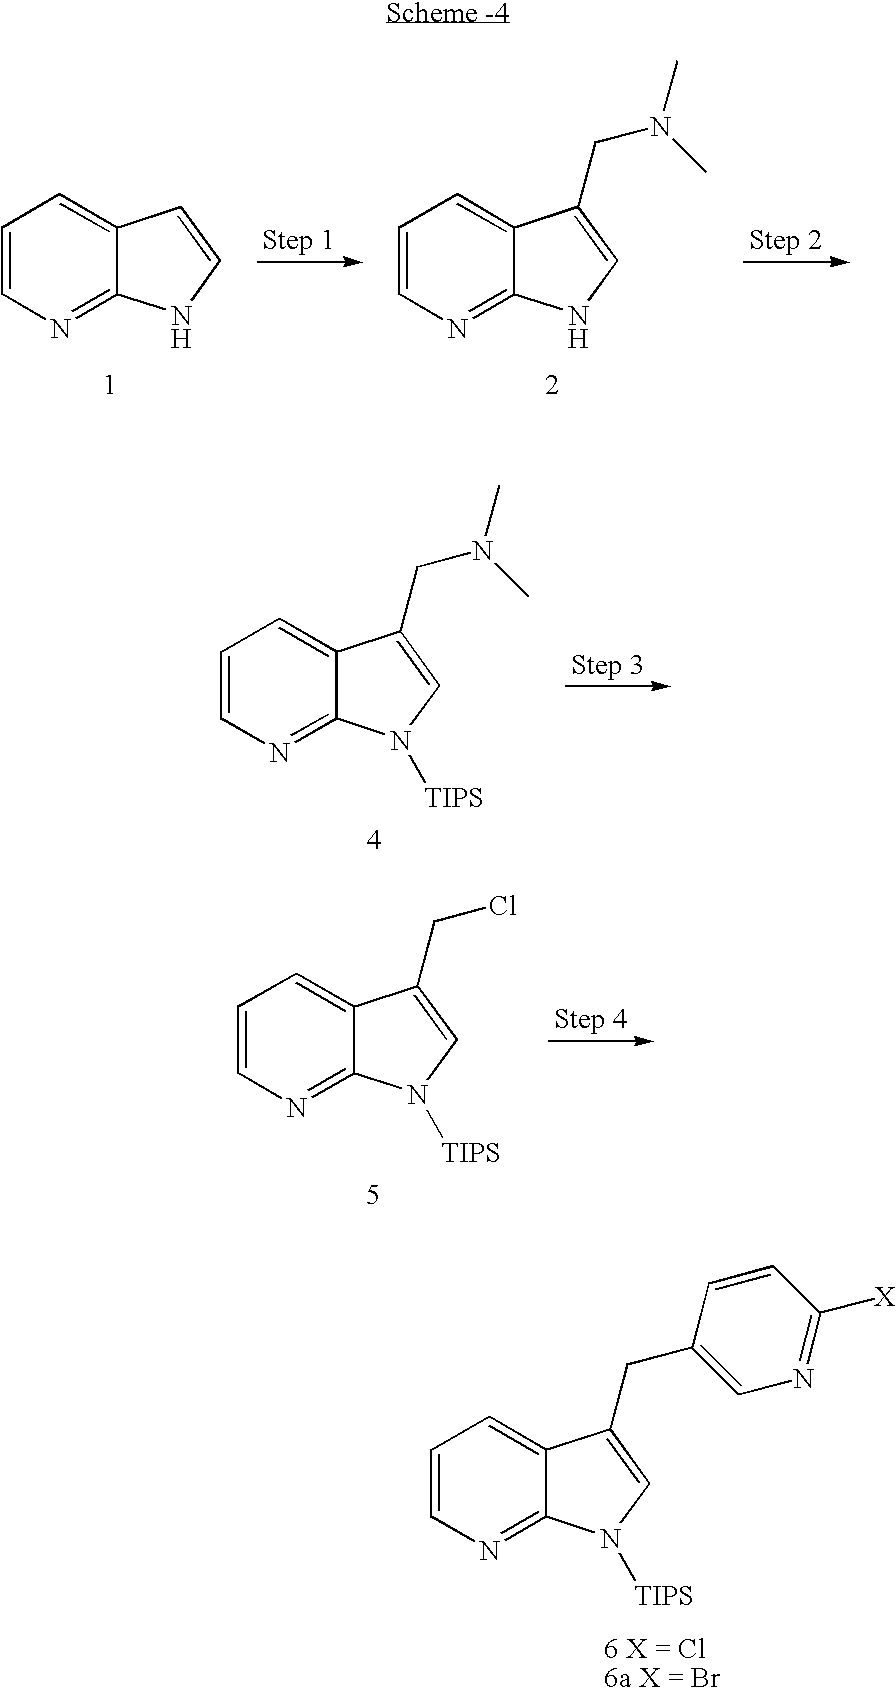 US20070032519A1 - Compounds modulating c-kit and c-fms activity and